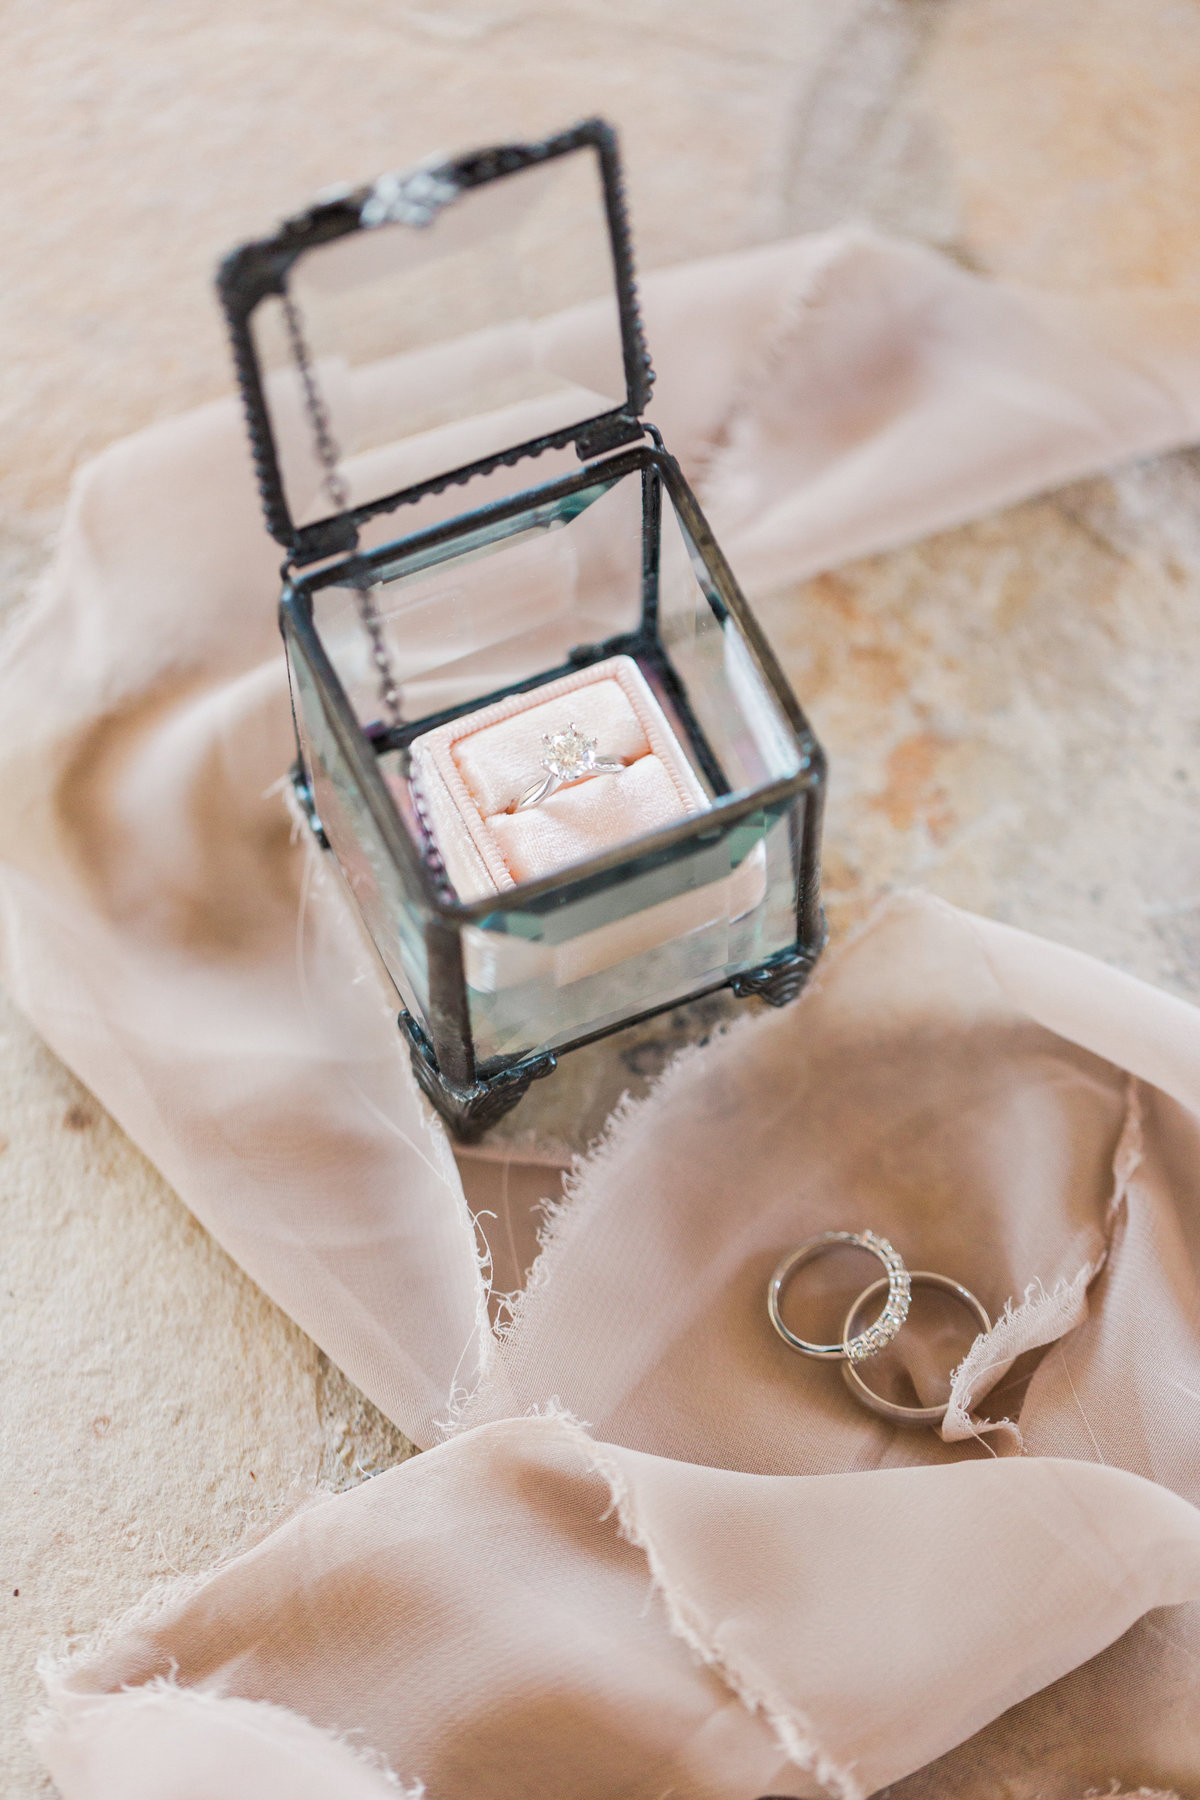 Quail_Ranch_Blush_California_Wedding_Valorie_Darling_Photography - 11 of 151